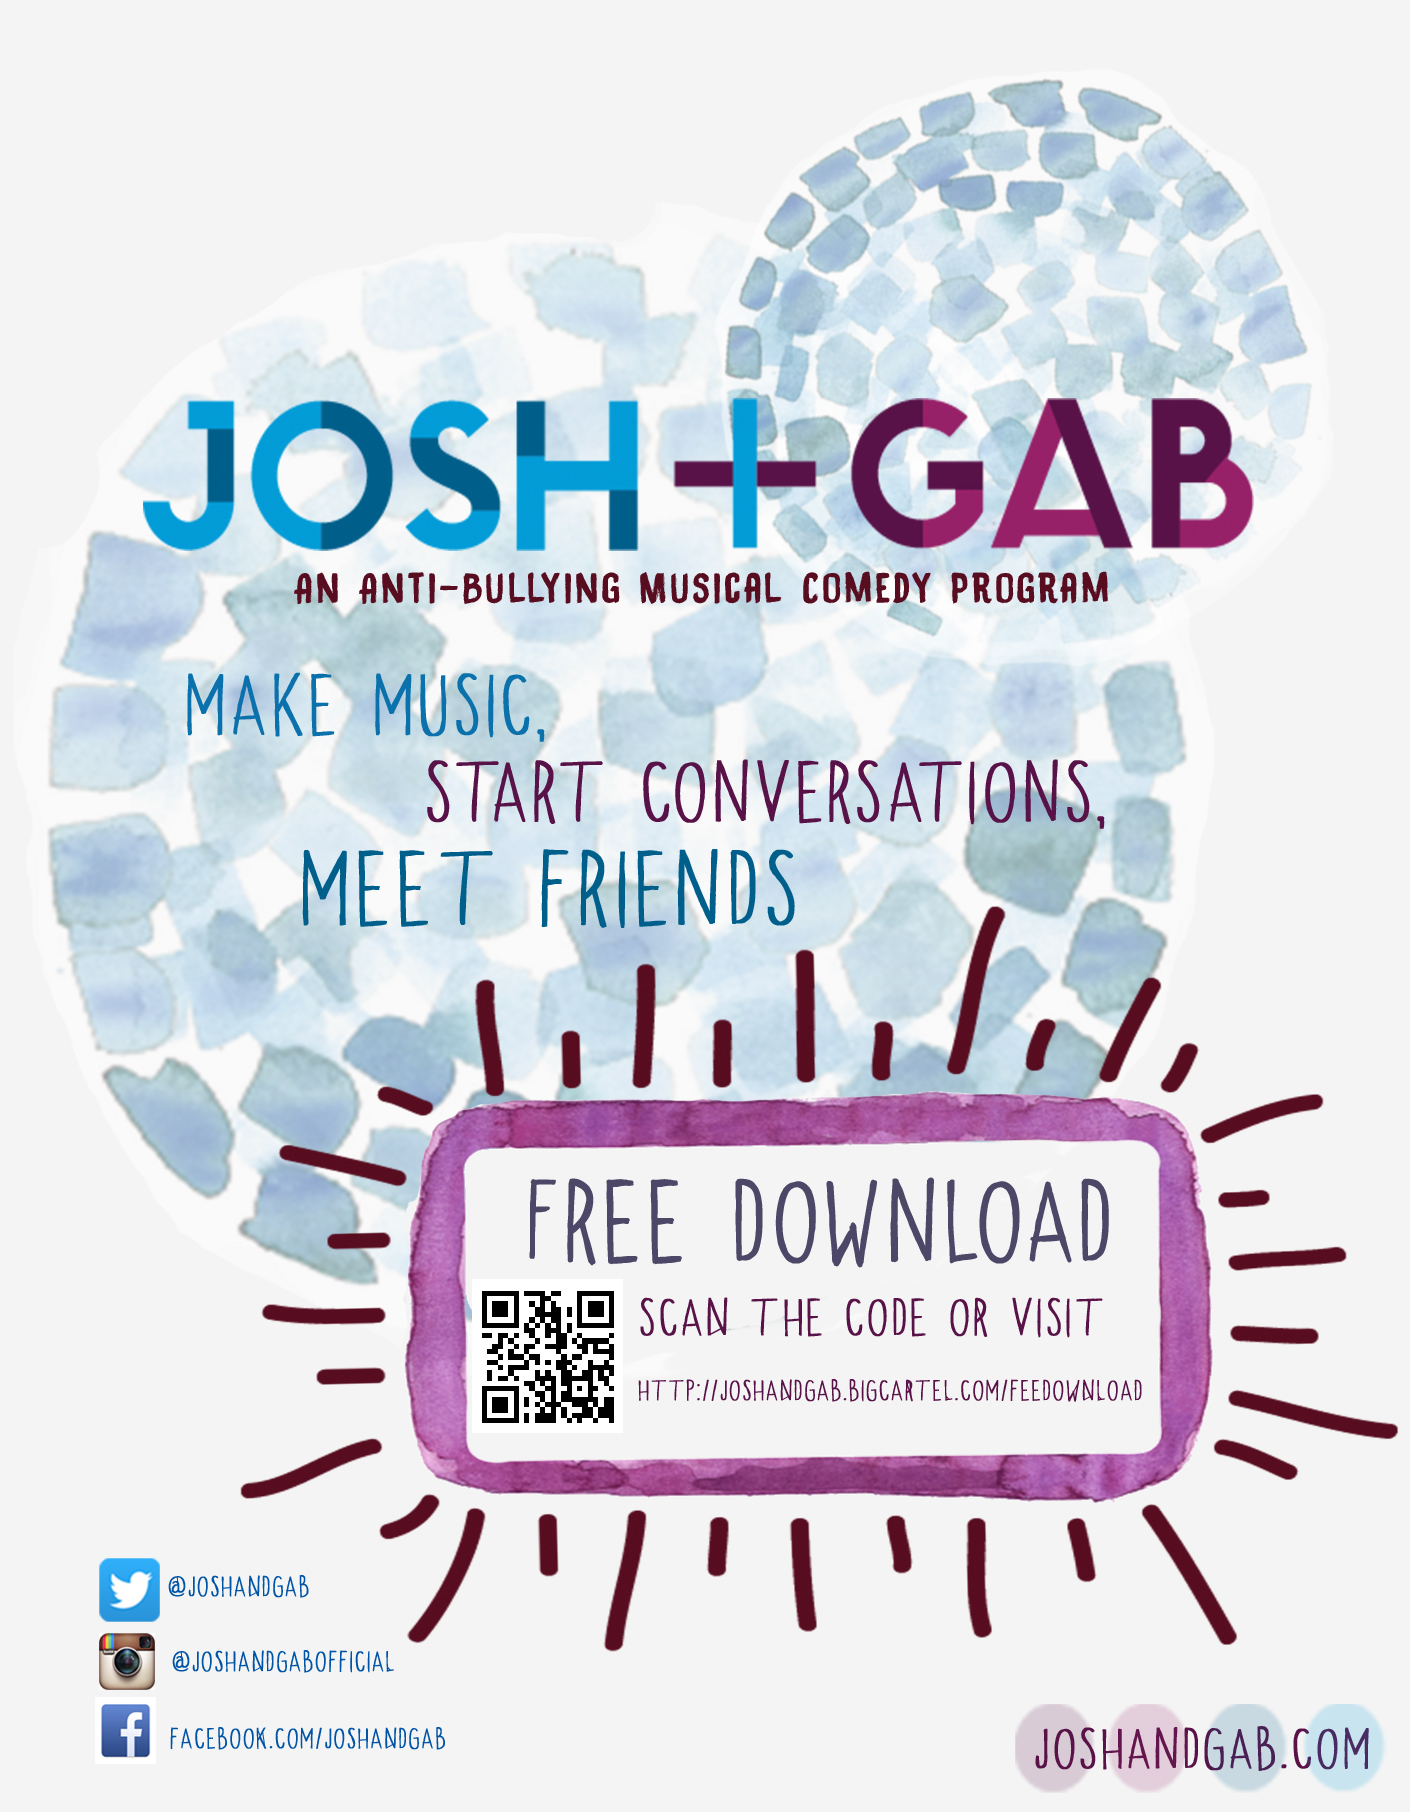 JOSH + GAB FREE DOWNLOAD CARD